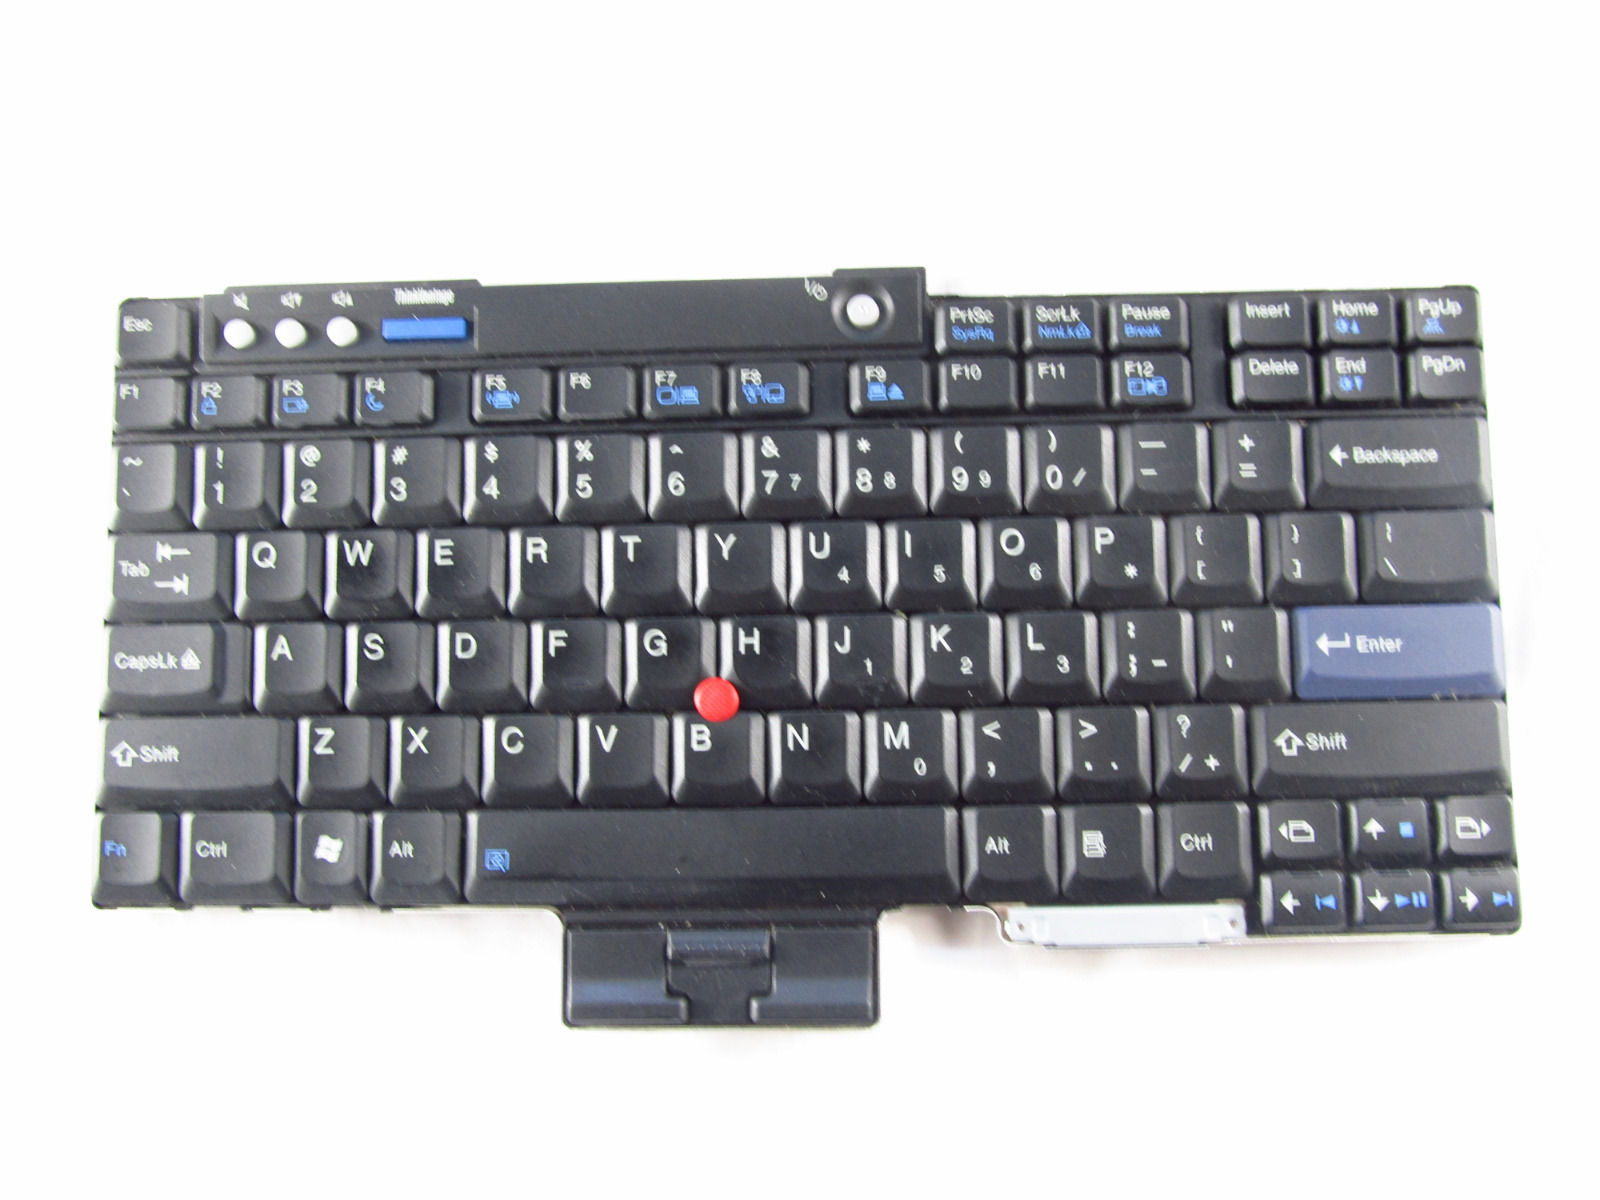 Delightful Colors And Exquisite Workmanship The Best For Ibm/lenovo Thinkpad T60 T60p P/n 42t3209 Laptop Keyboard Kyt6 Used Famous For Selected Materials Novel Designs